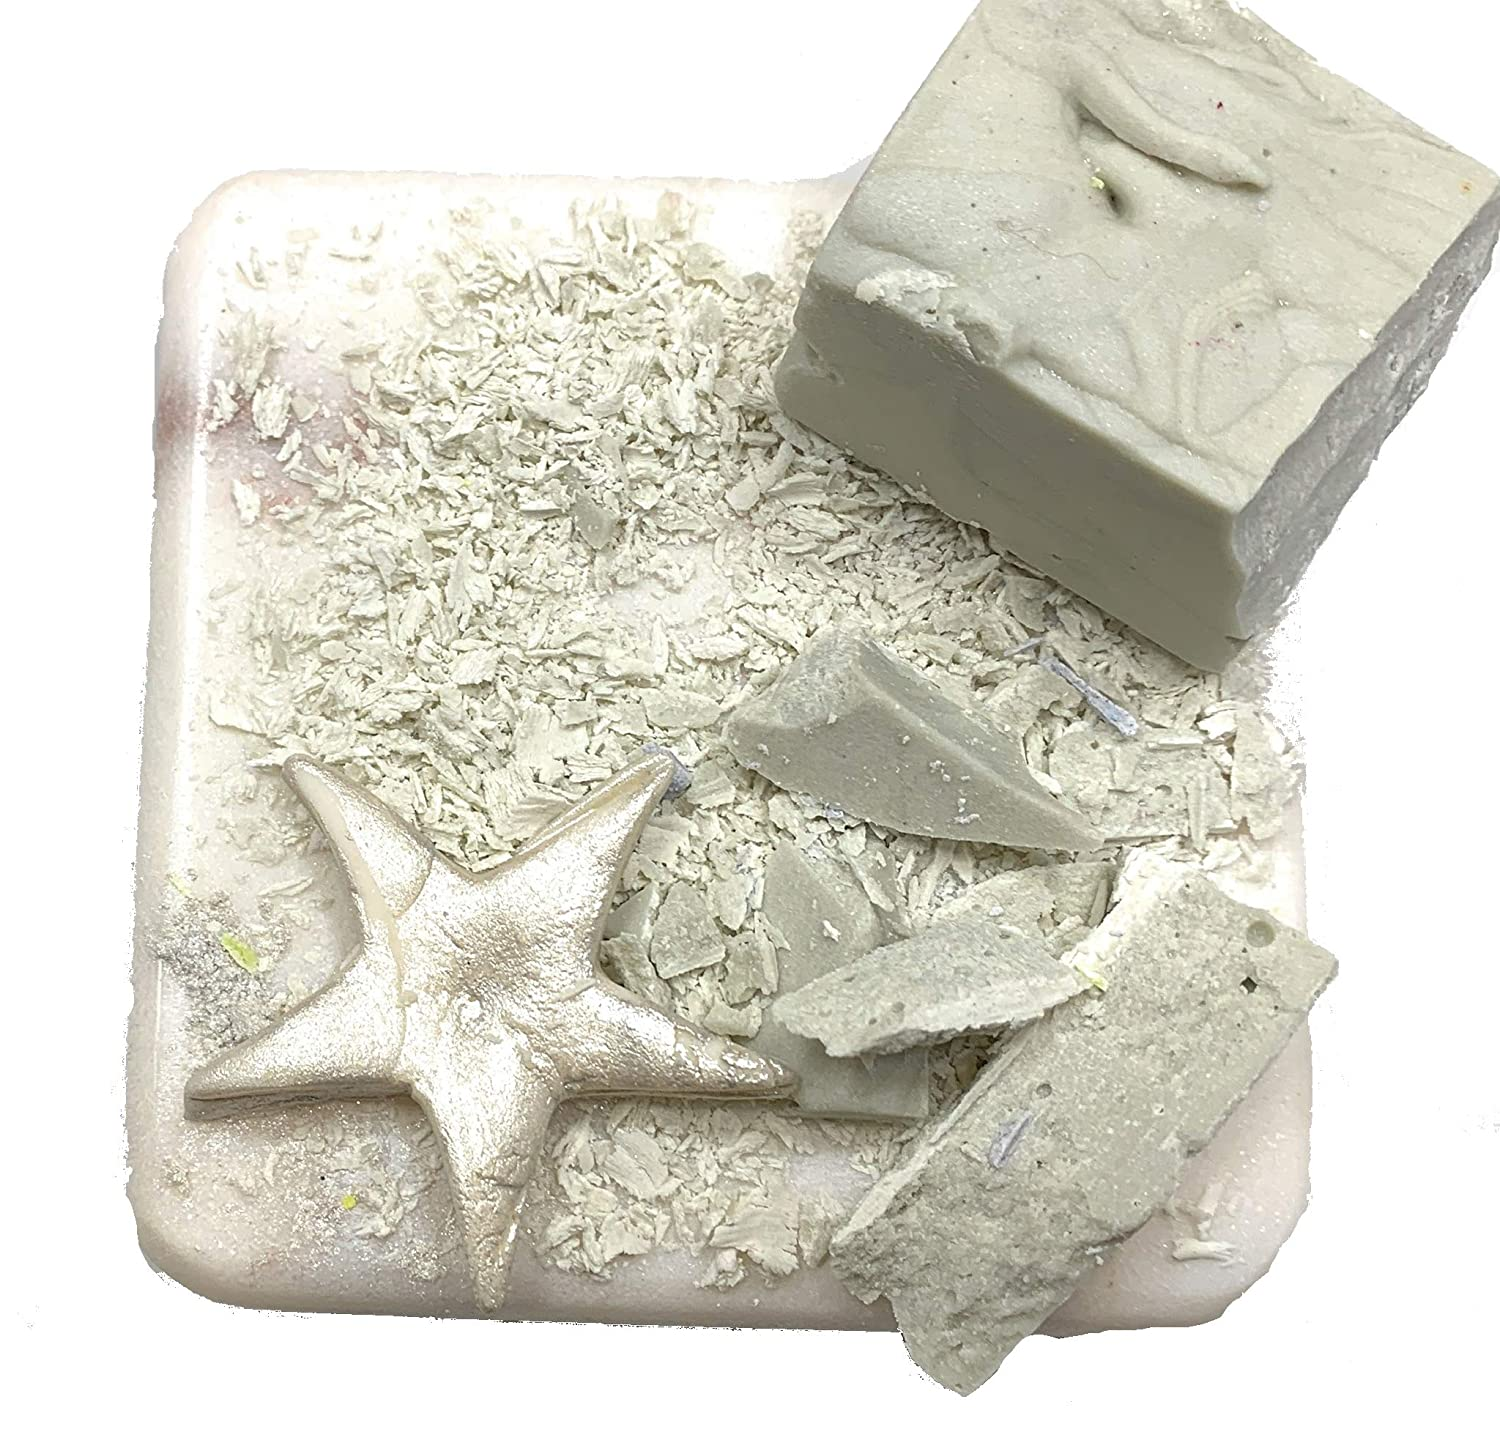 Ultimate Baker Naturally Colored Daily bargain sale Chocolate B Many popular brands Slab Silver